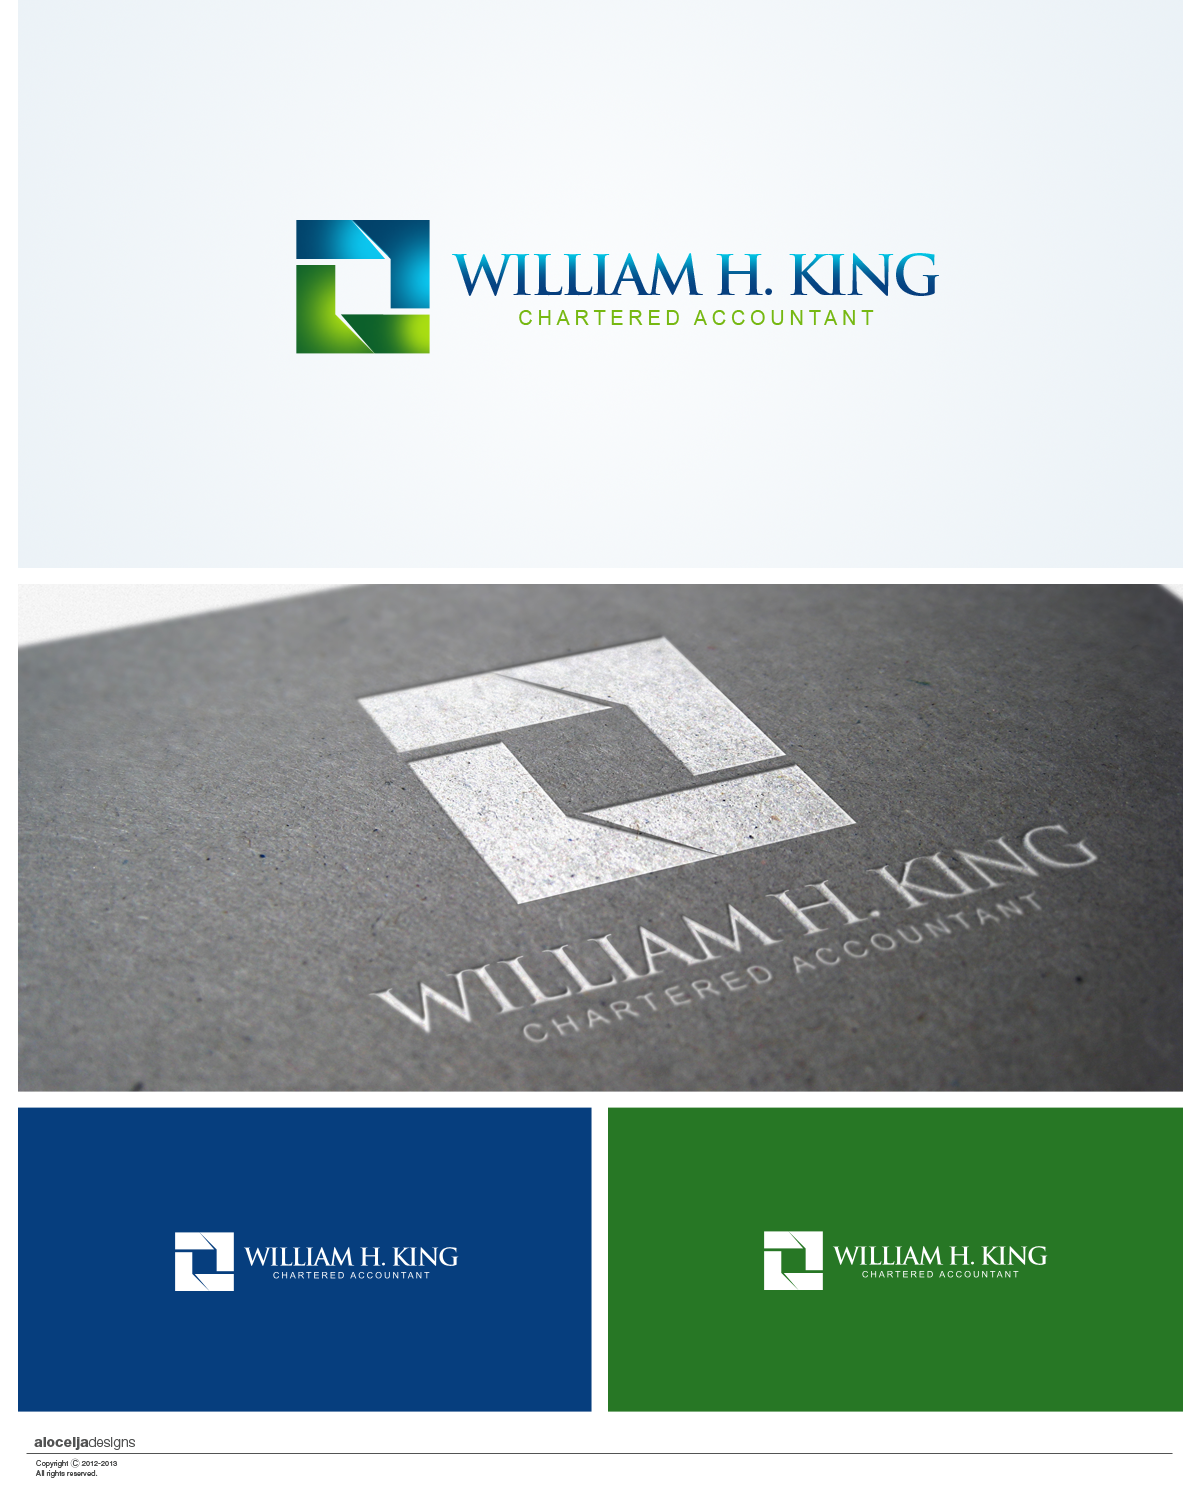 Logo Design by alocelja - Entry No. 183 in the Logo Design Contest New Logo Design for William H. King, Chartered Accountant.